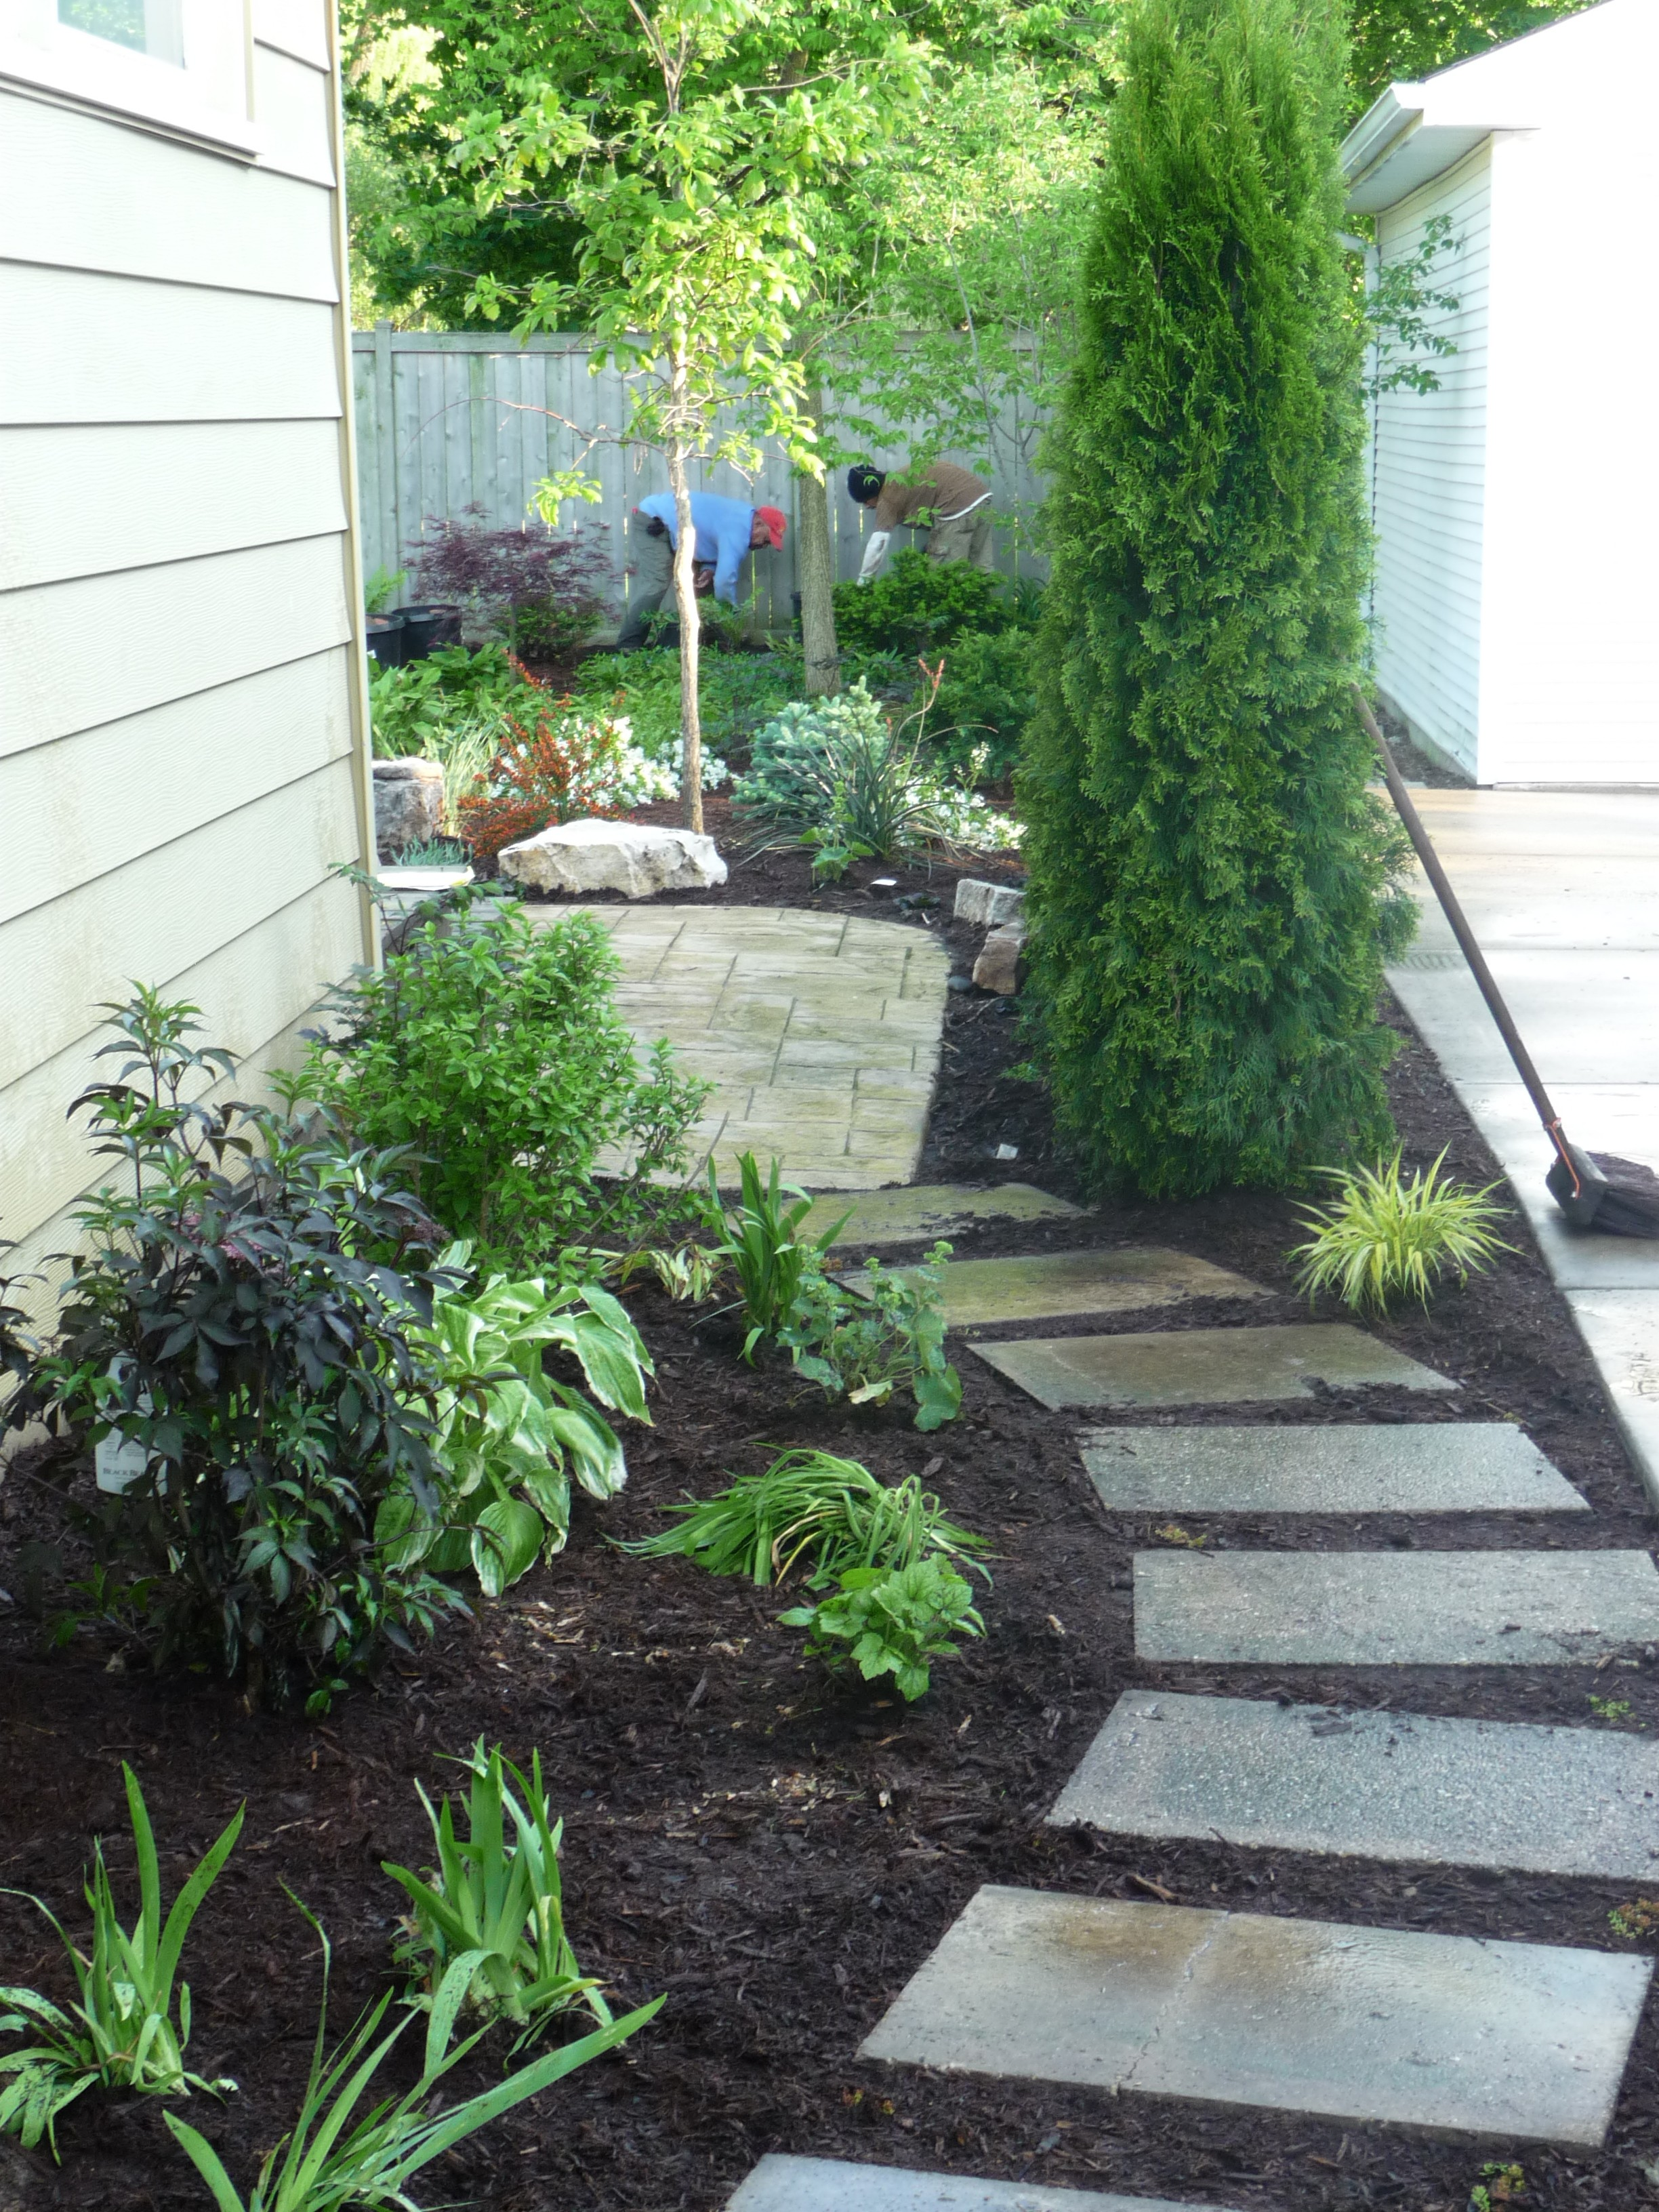 re used concrete pavers for side path